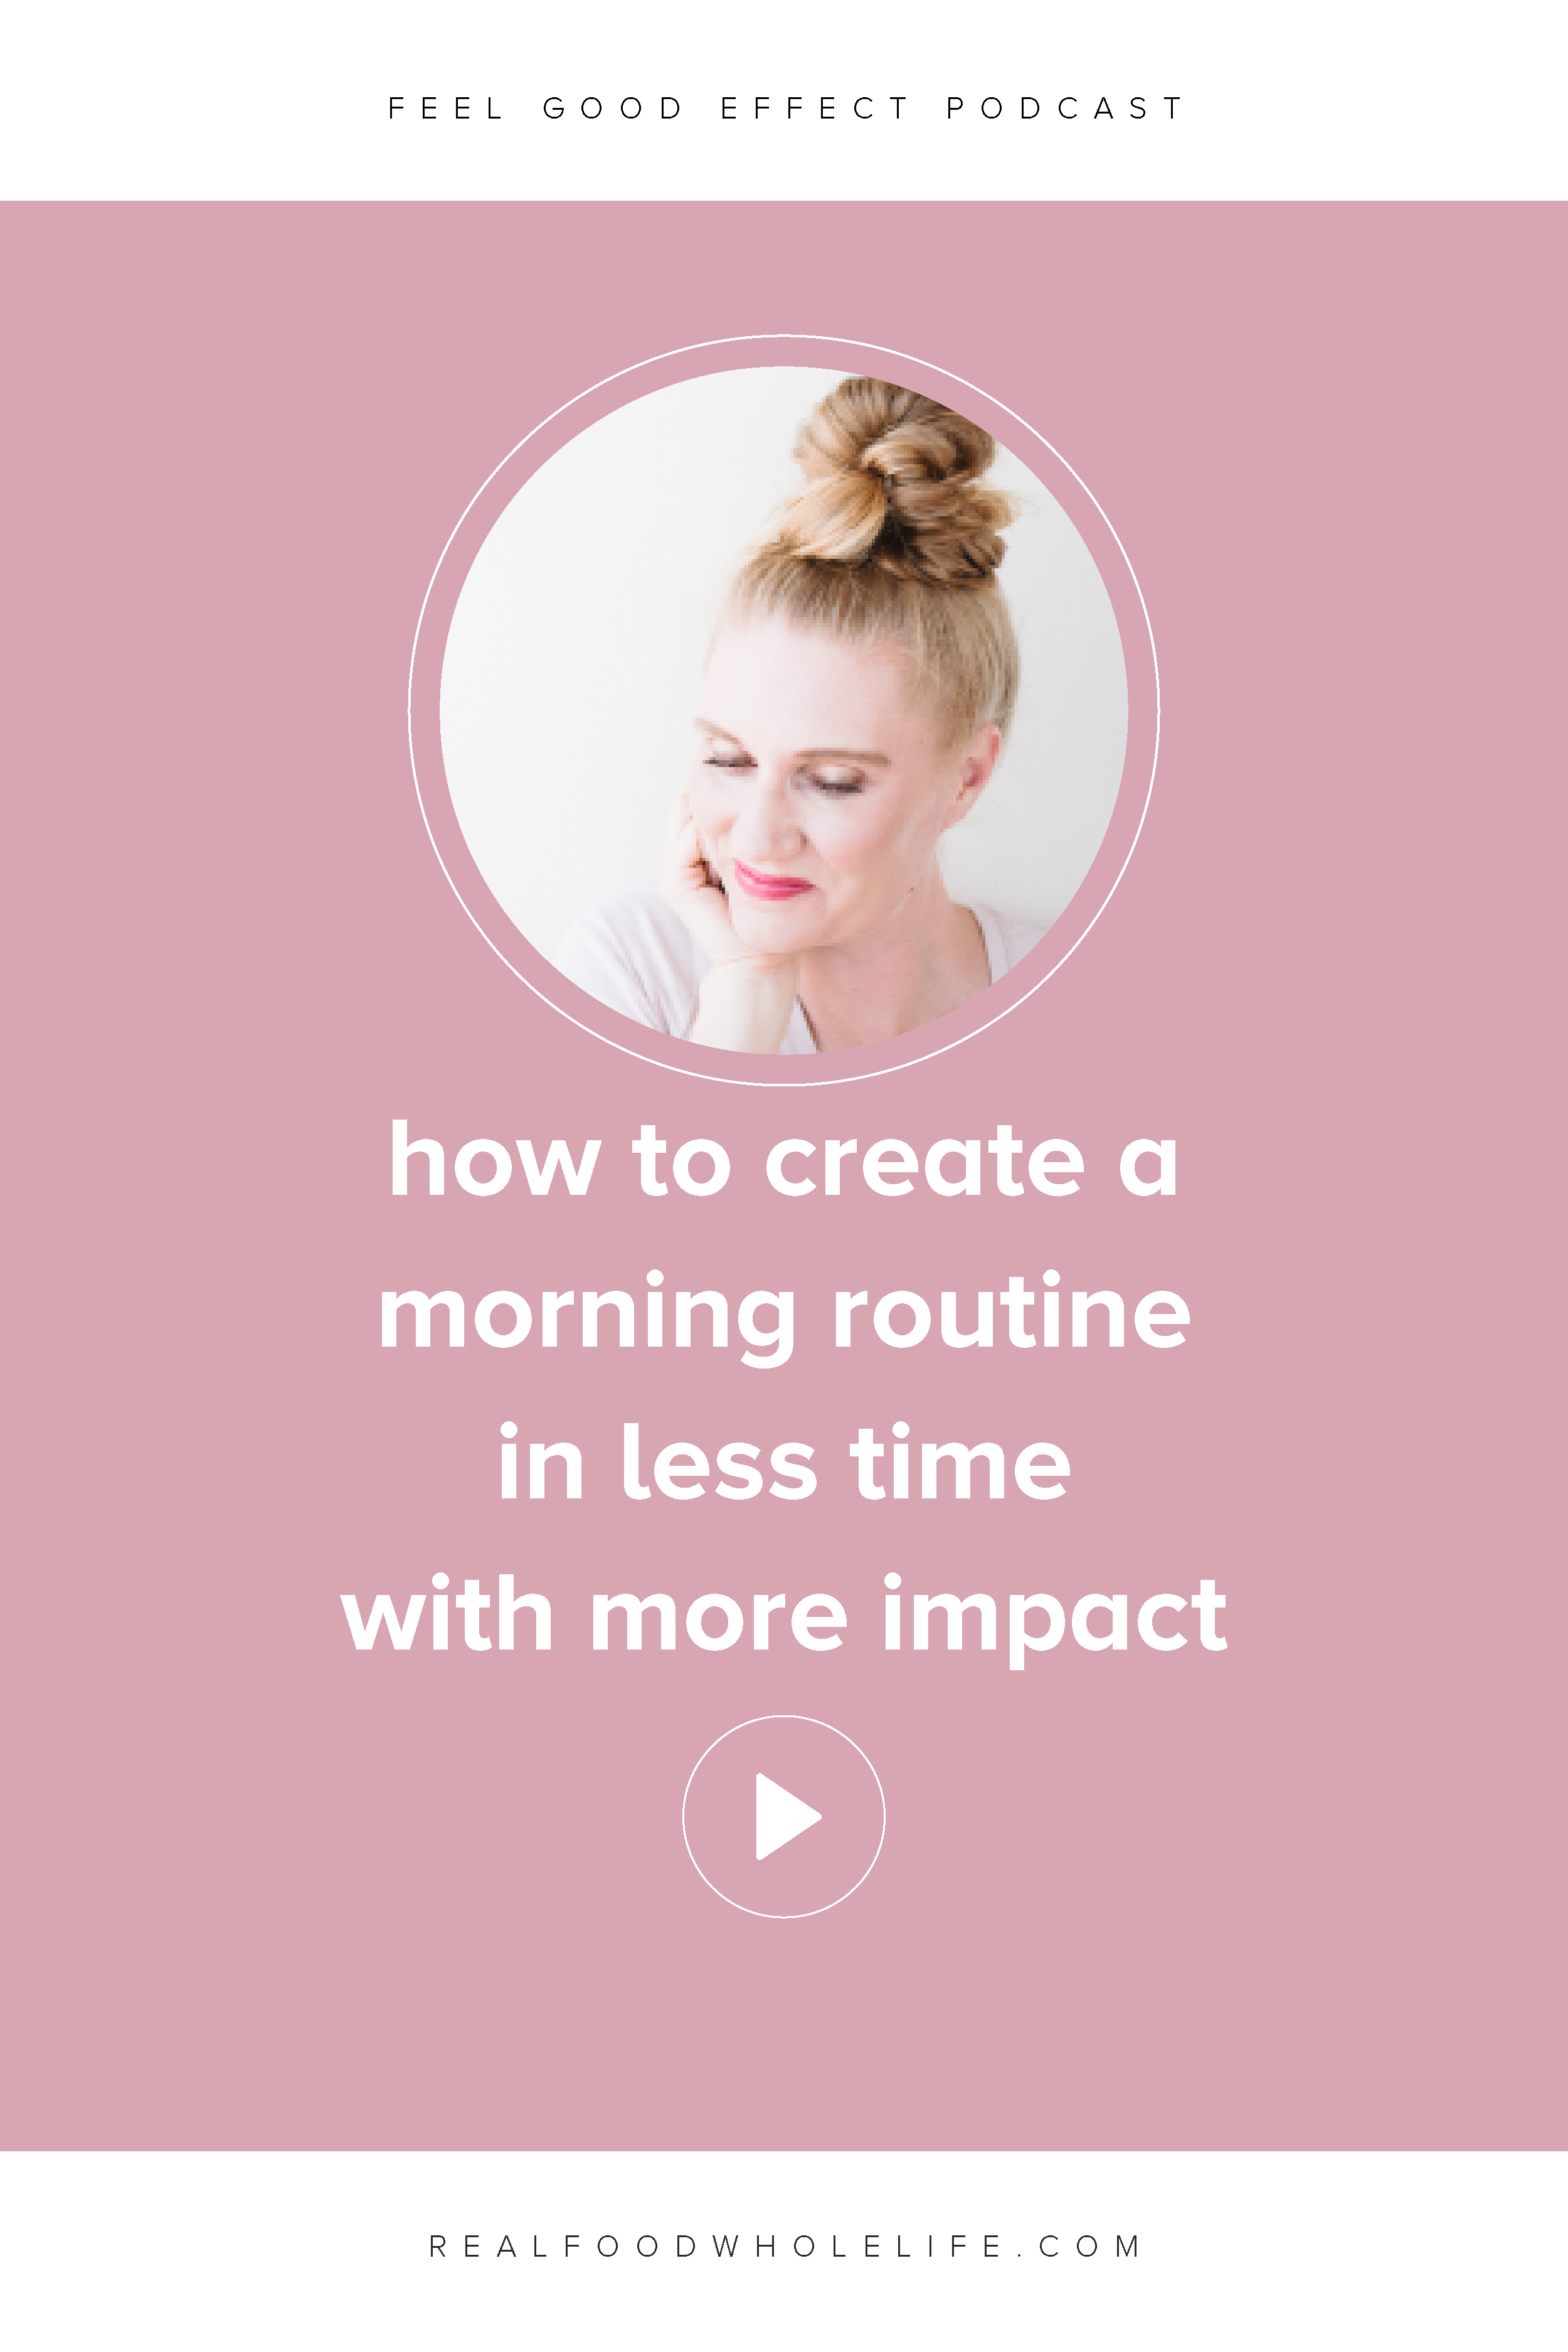 How to Create a Morning Routine in Less Time with More Impact